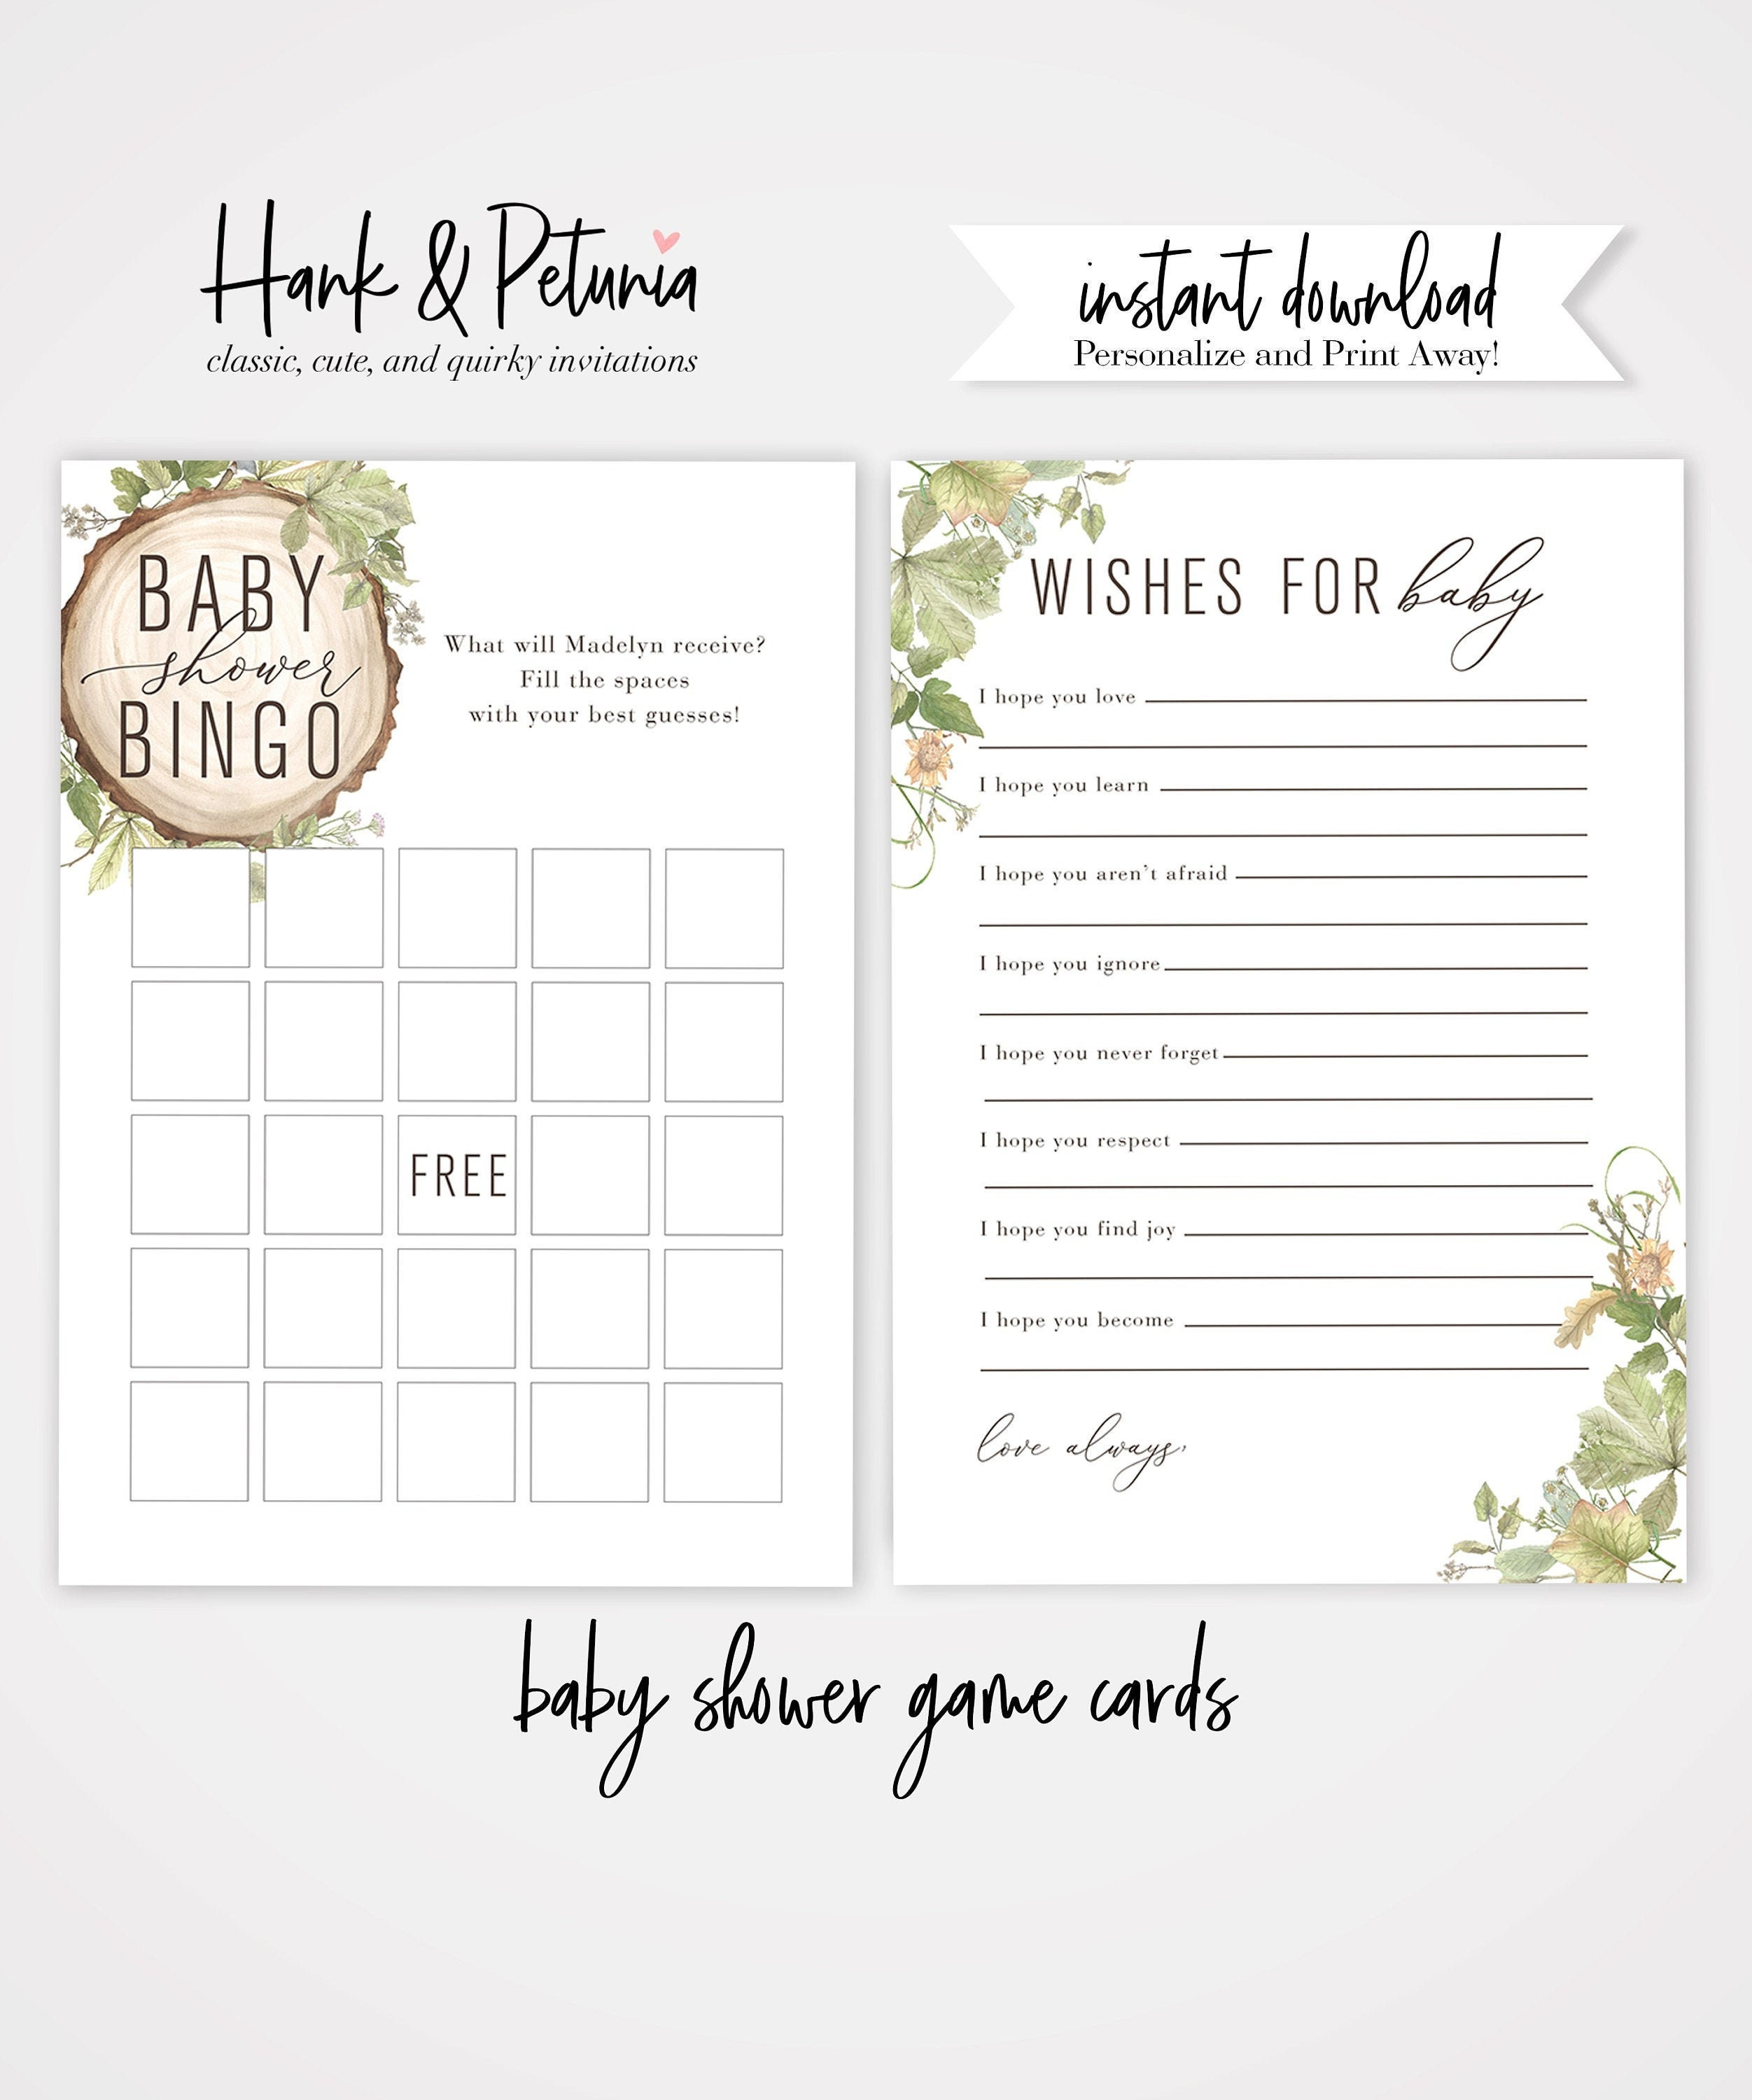 Rustic Woodland Baby Shower Game Cards and Wishes for Baby